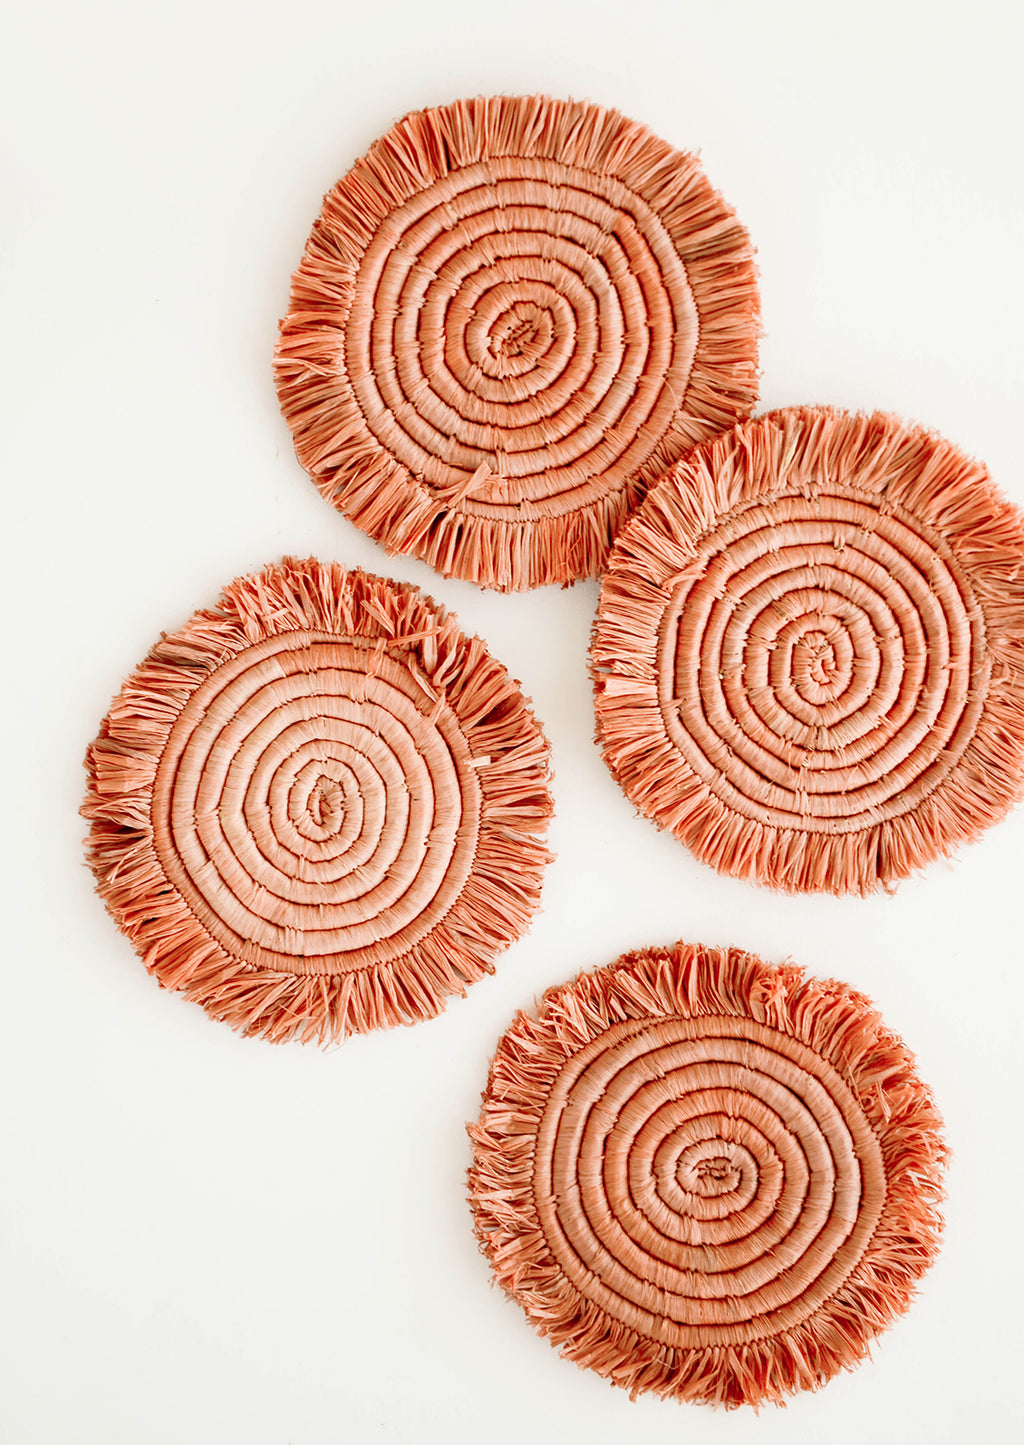 Terracotta Peach: Set of 4 Circular Raffia Coasters with Fringed Trim in Dark Peach